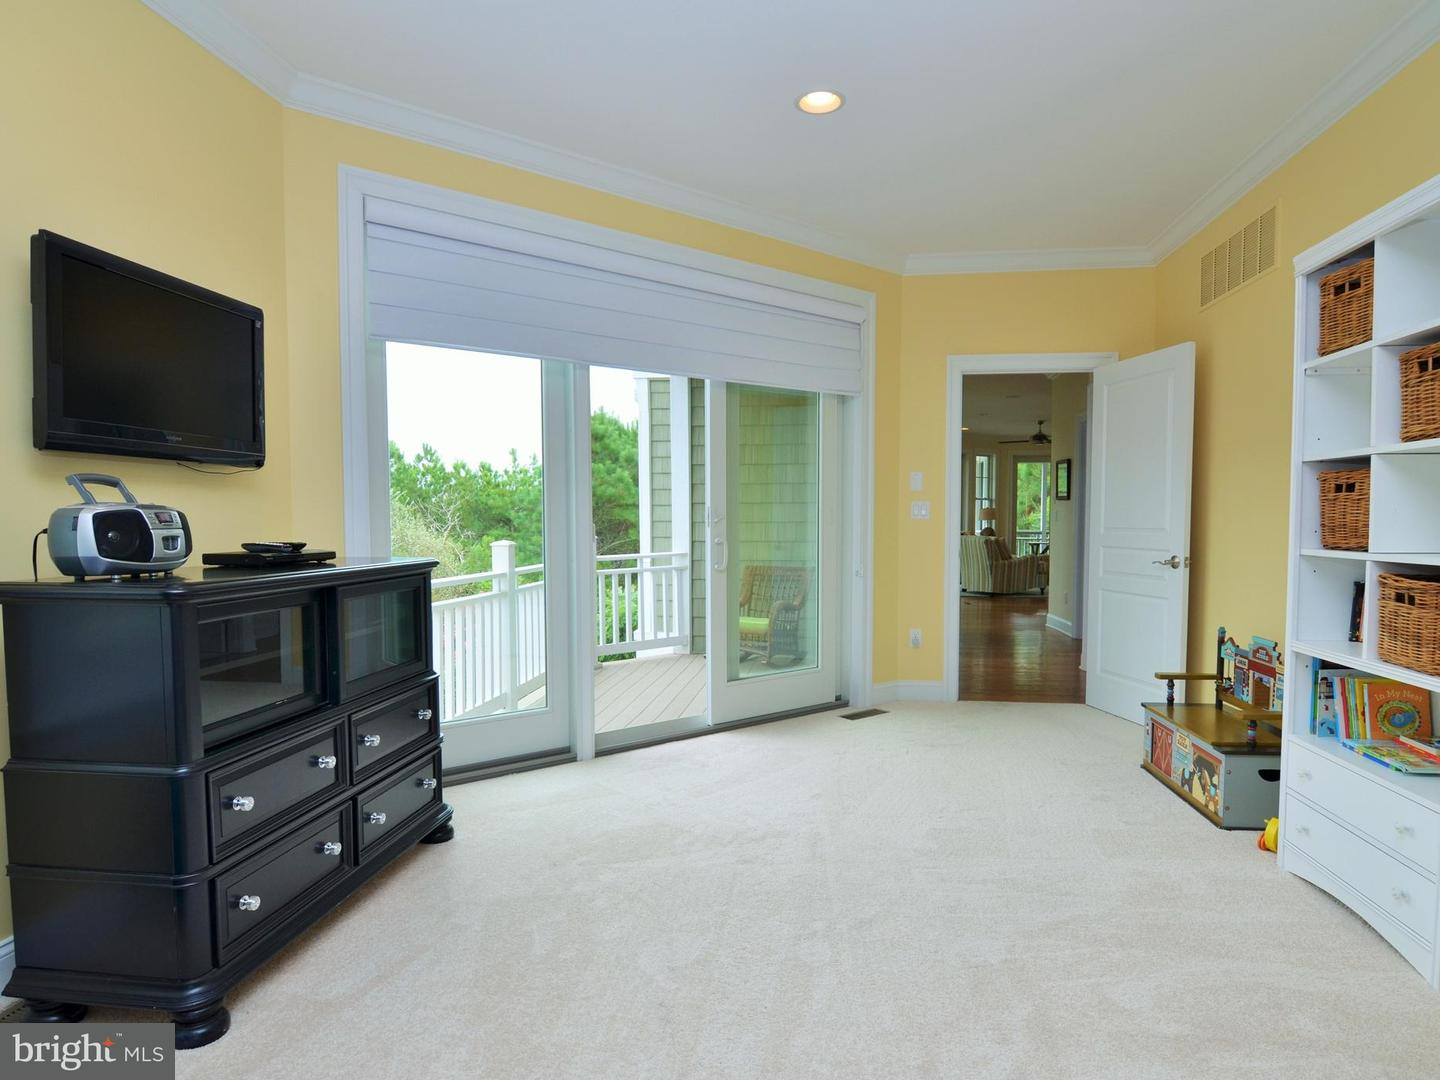 1002293530-300500807529-2018-09-25-15-08-25 31 Hall Ave | Rehoboth Beach, De Real Estate For Sale | MLS# 1002293530  - Suzanne Macnab